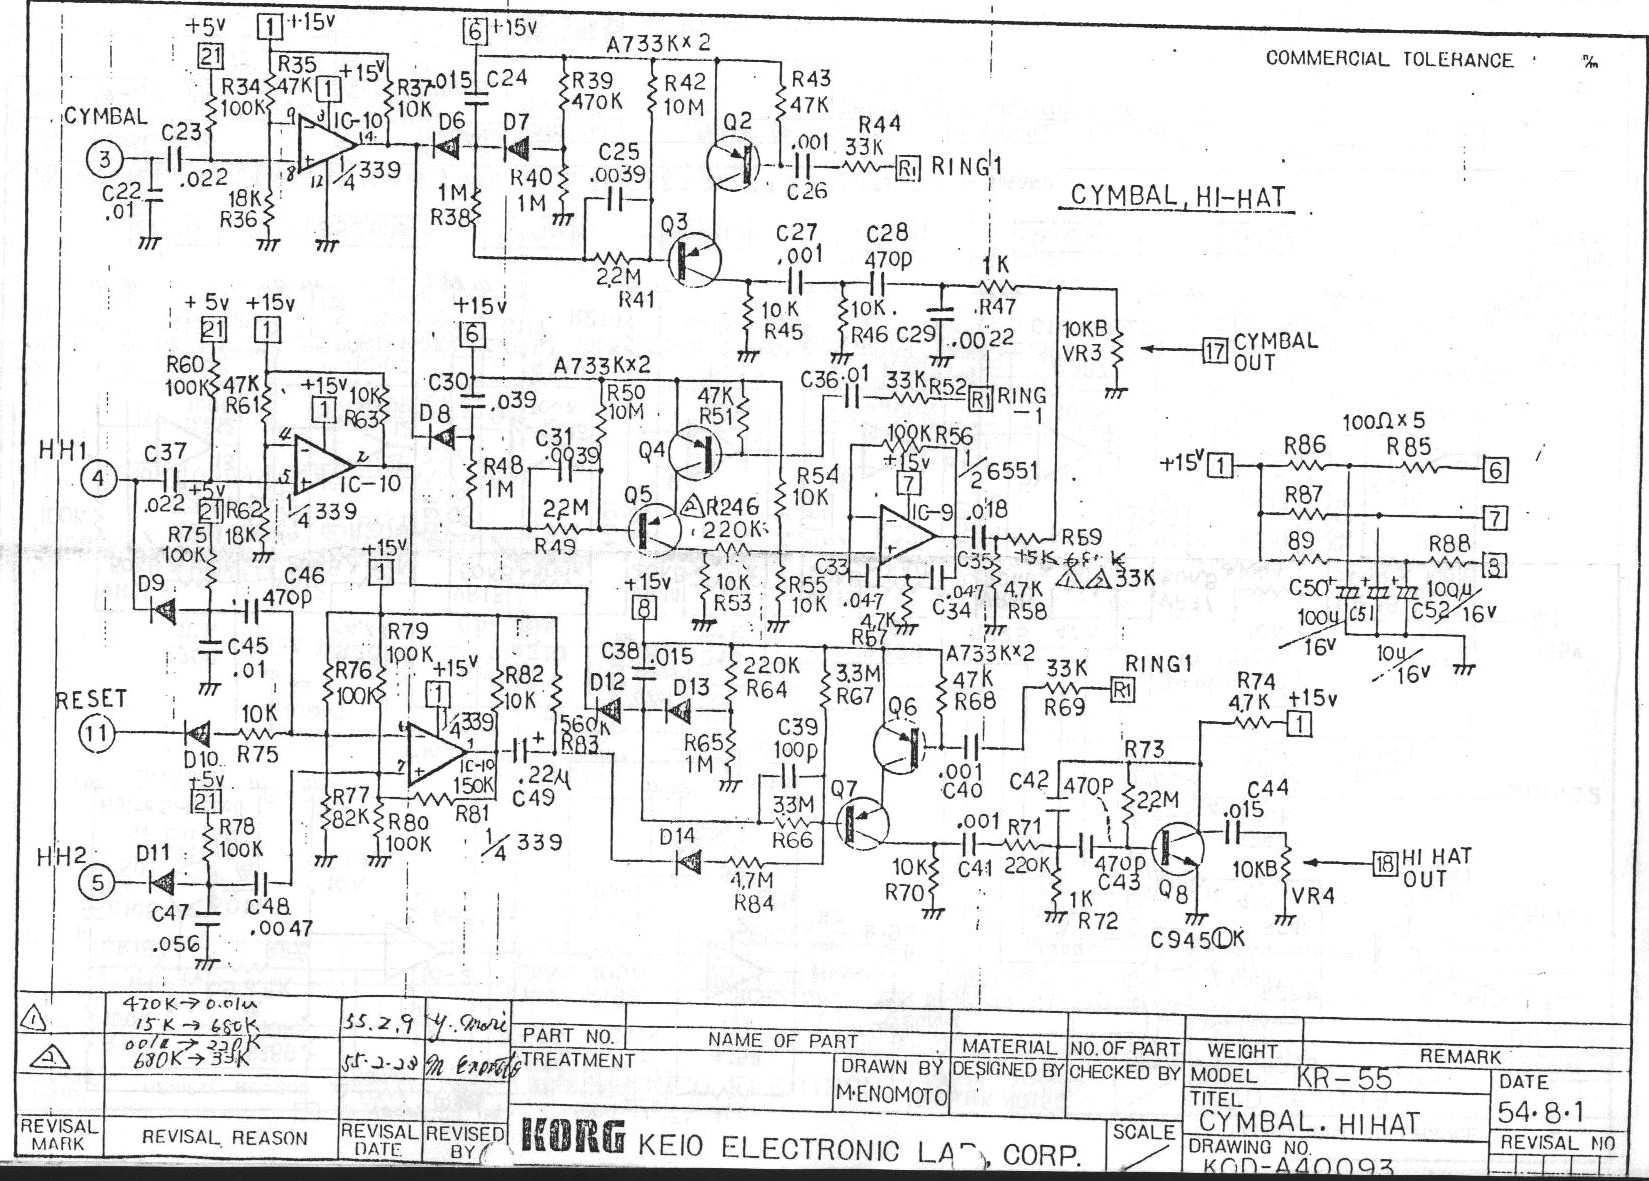 wiring diagram for 2000 international 9200